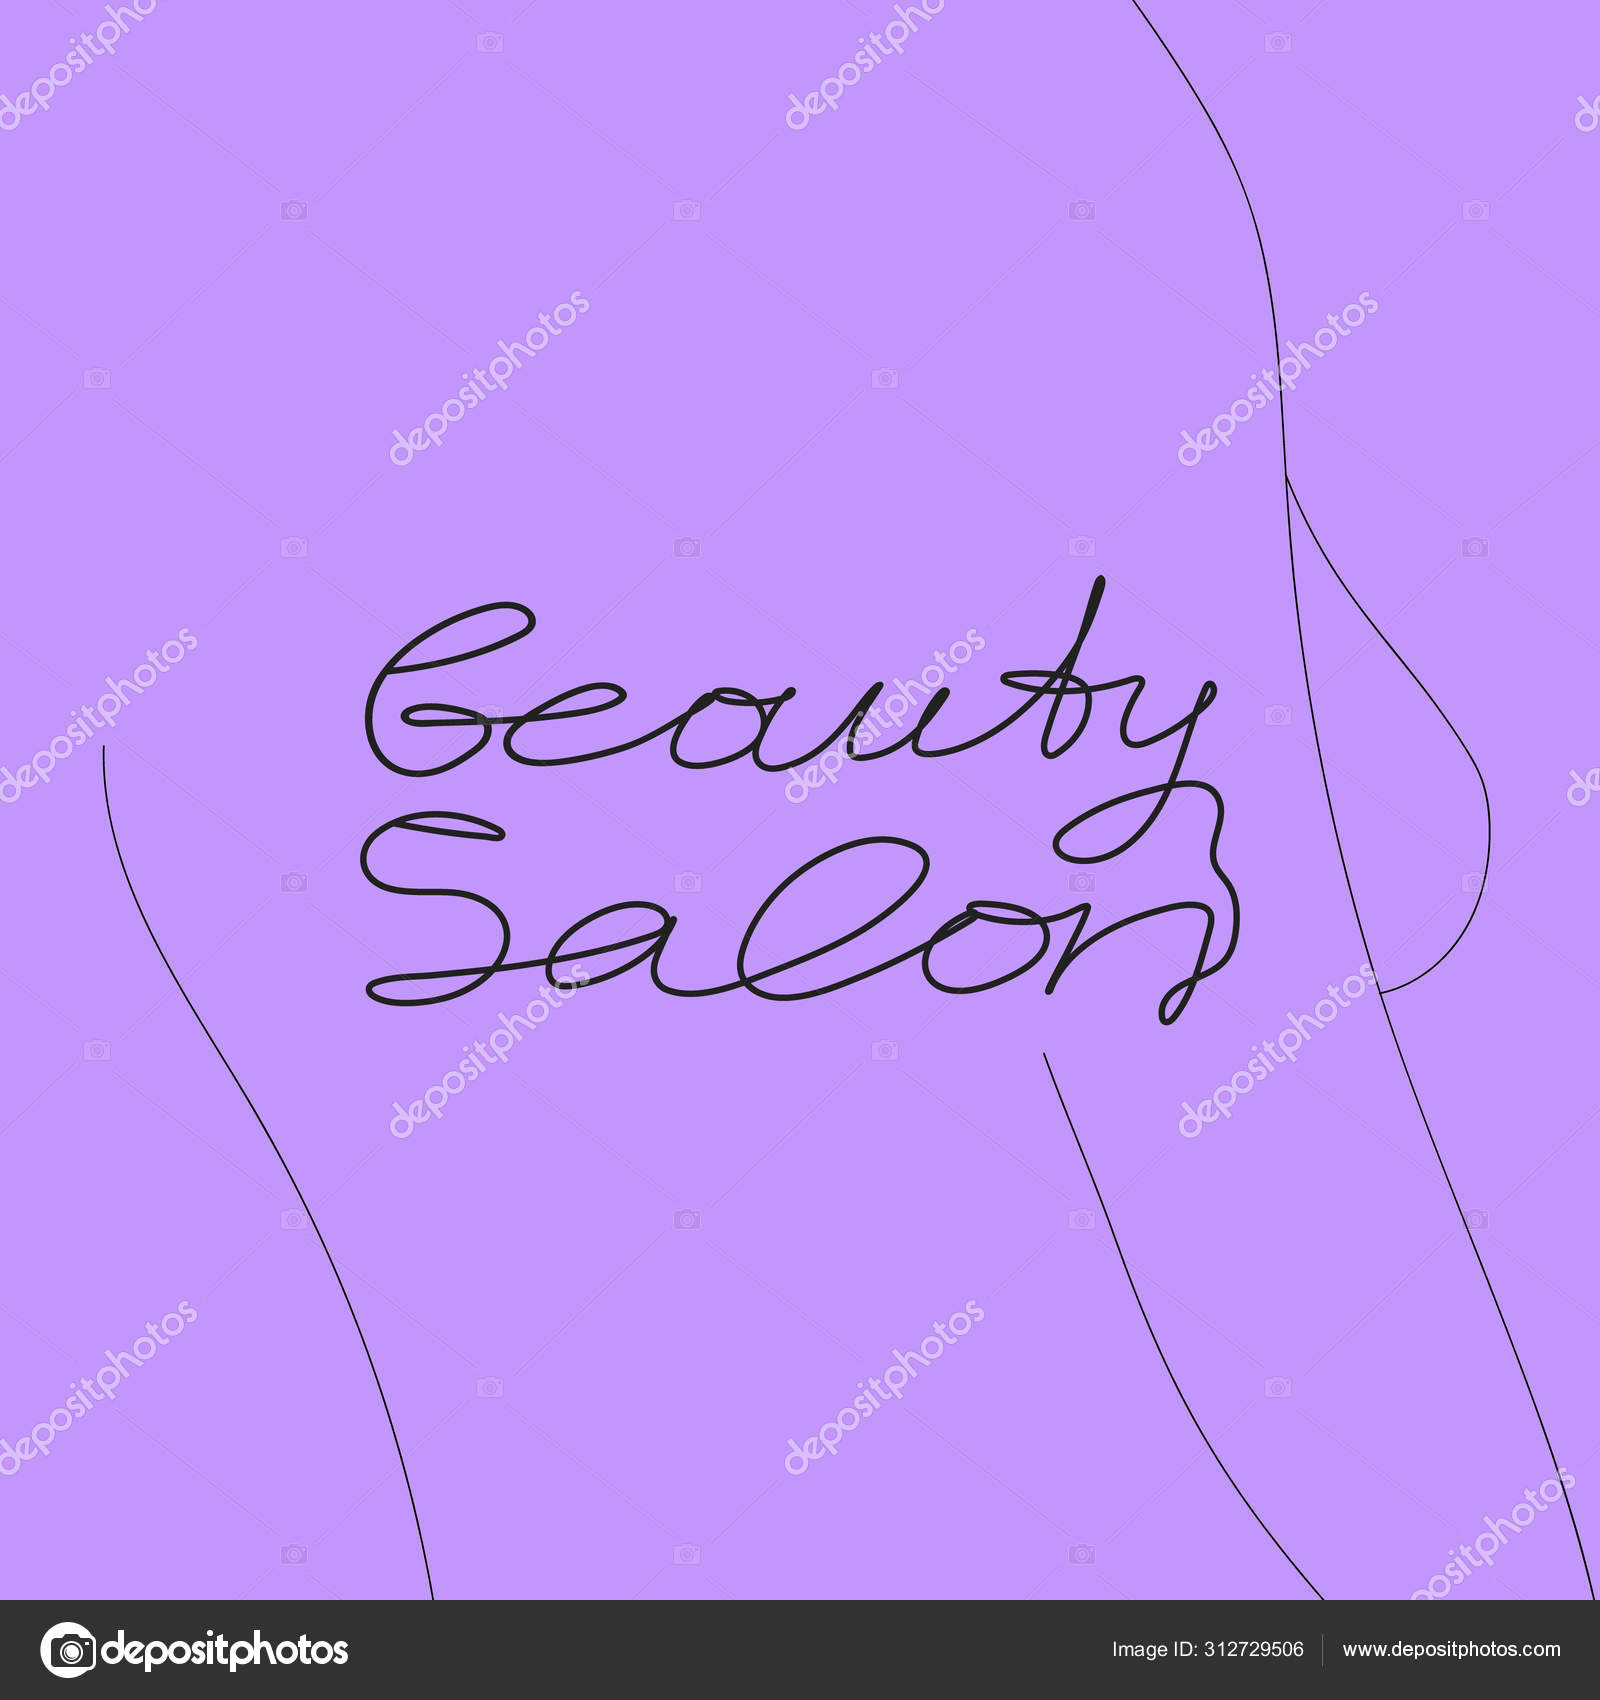 Beauty Salon Greeting Card Women Body Line Style Beauty Concept Stock Vector C Yuliashlyahova 312729506